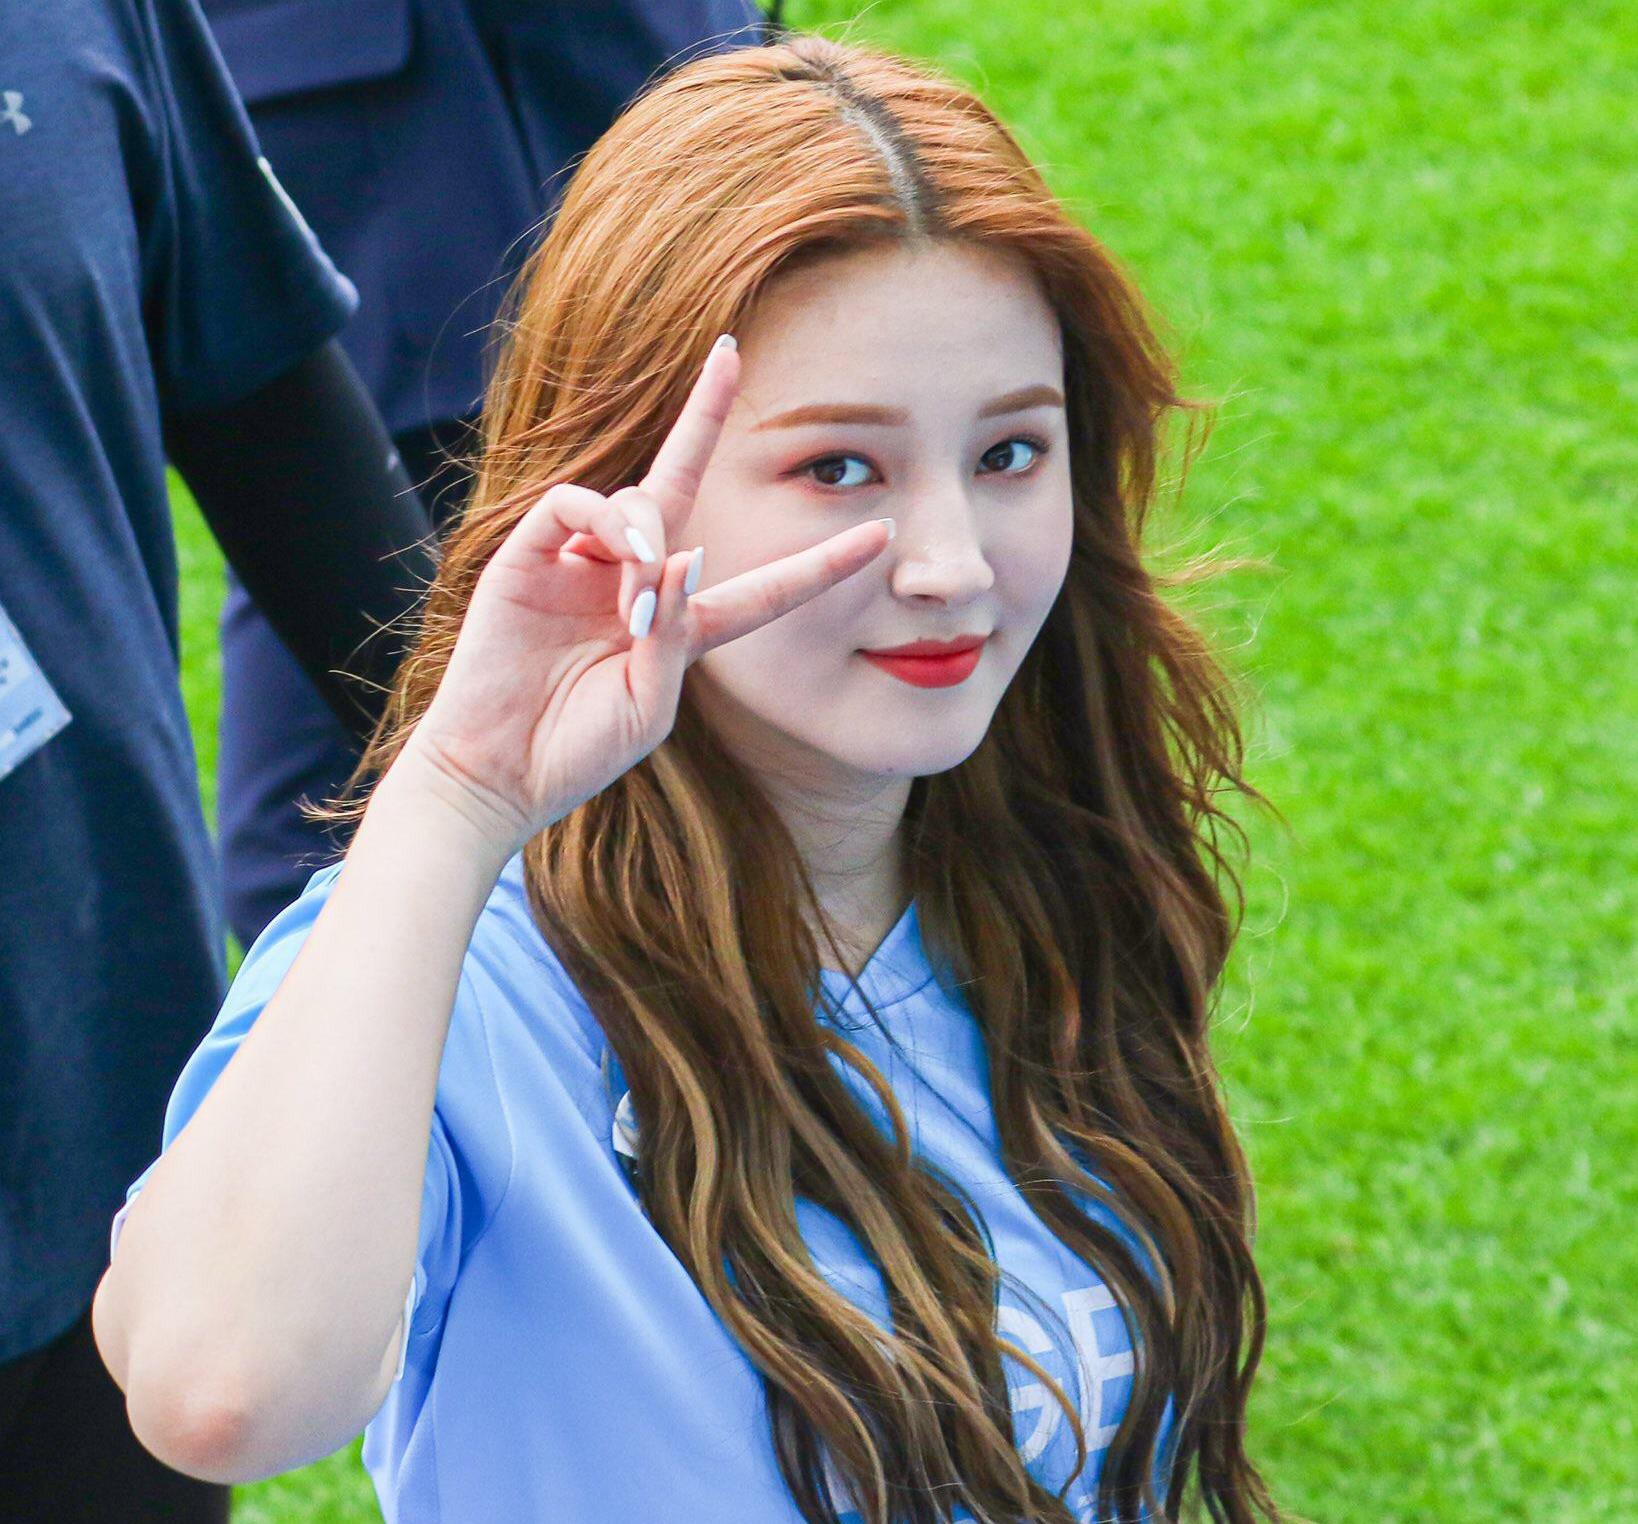 nancy_momoland_images